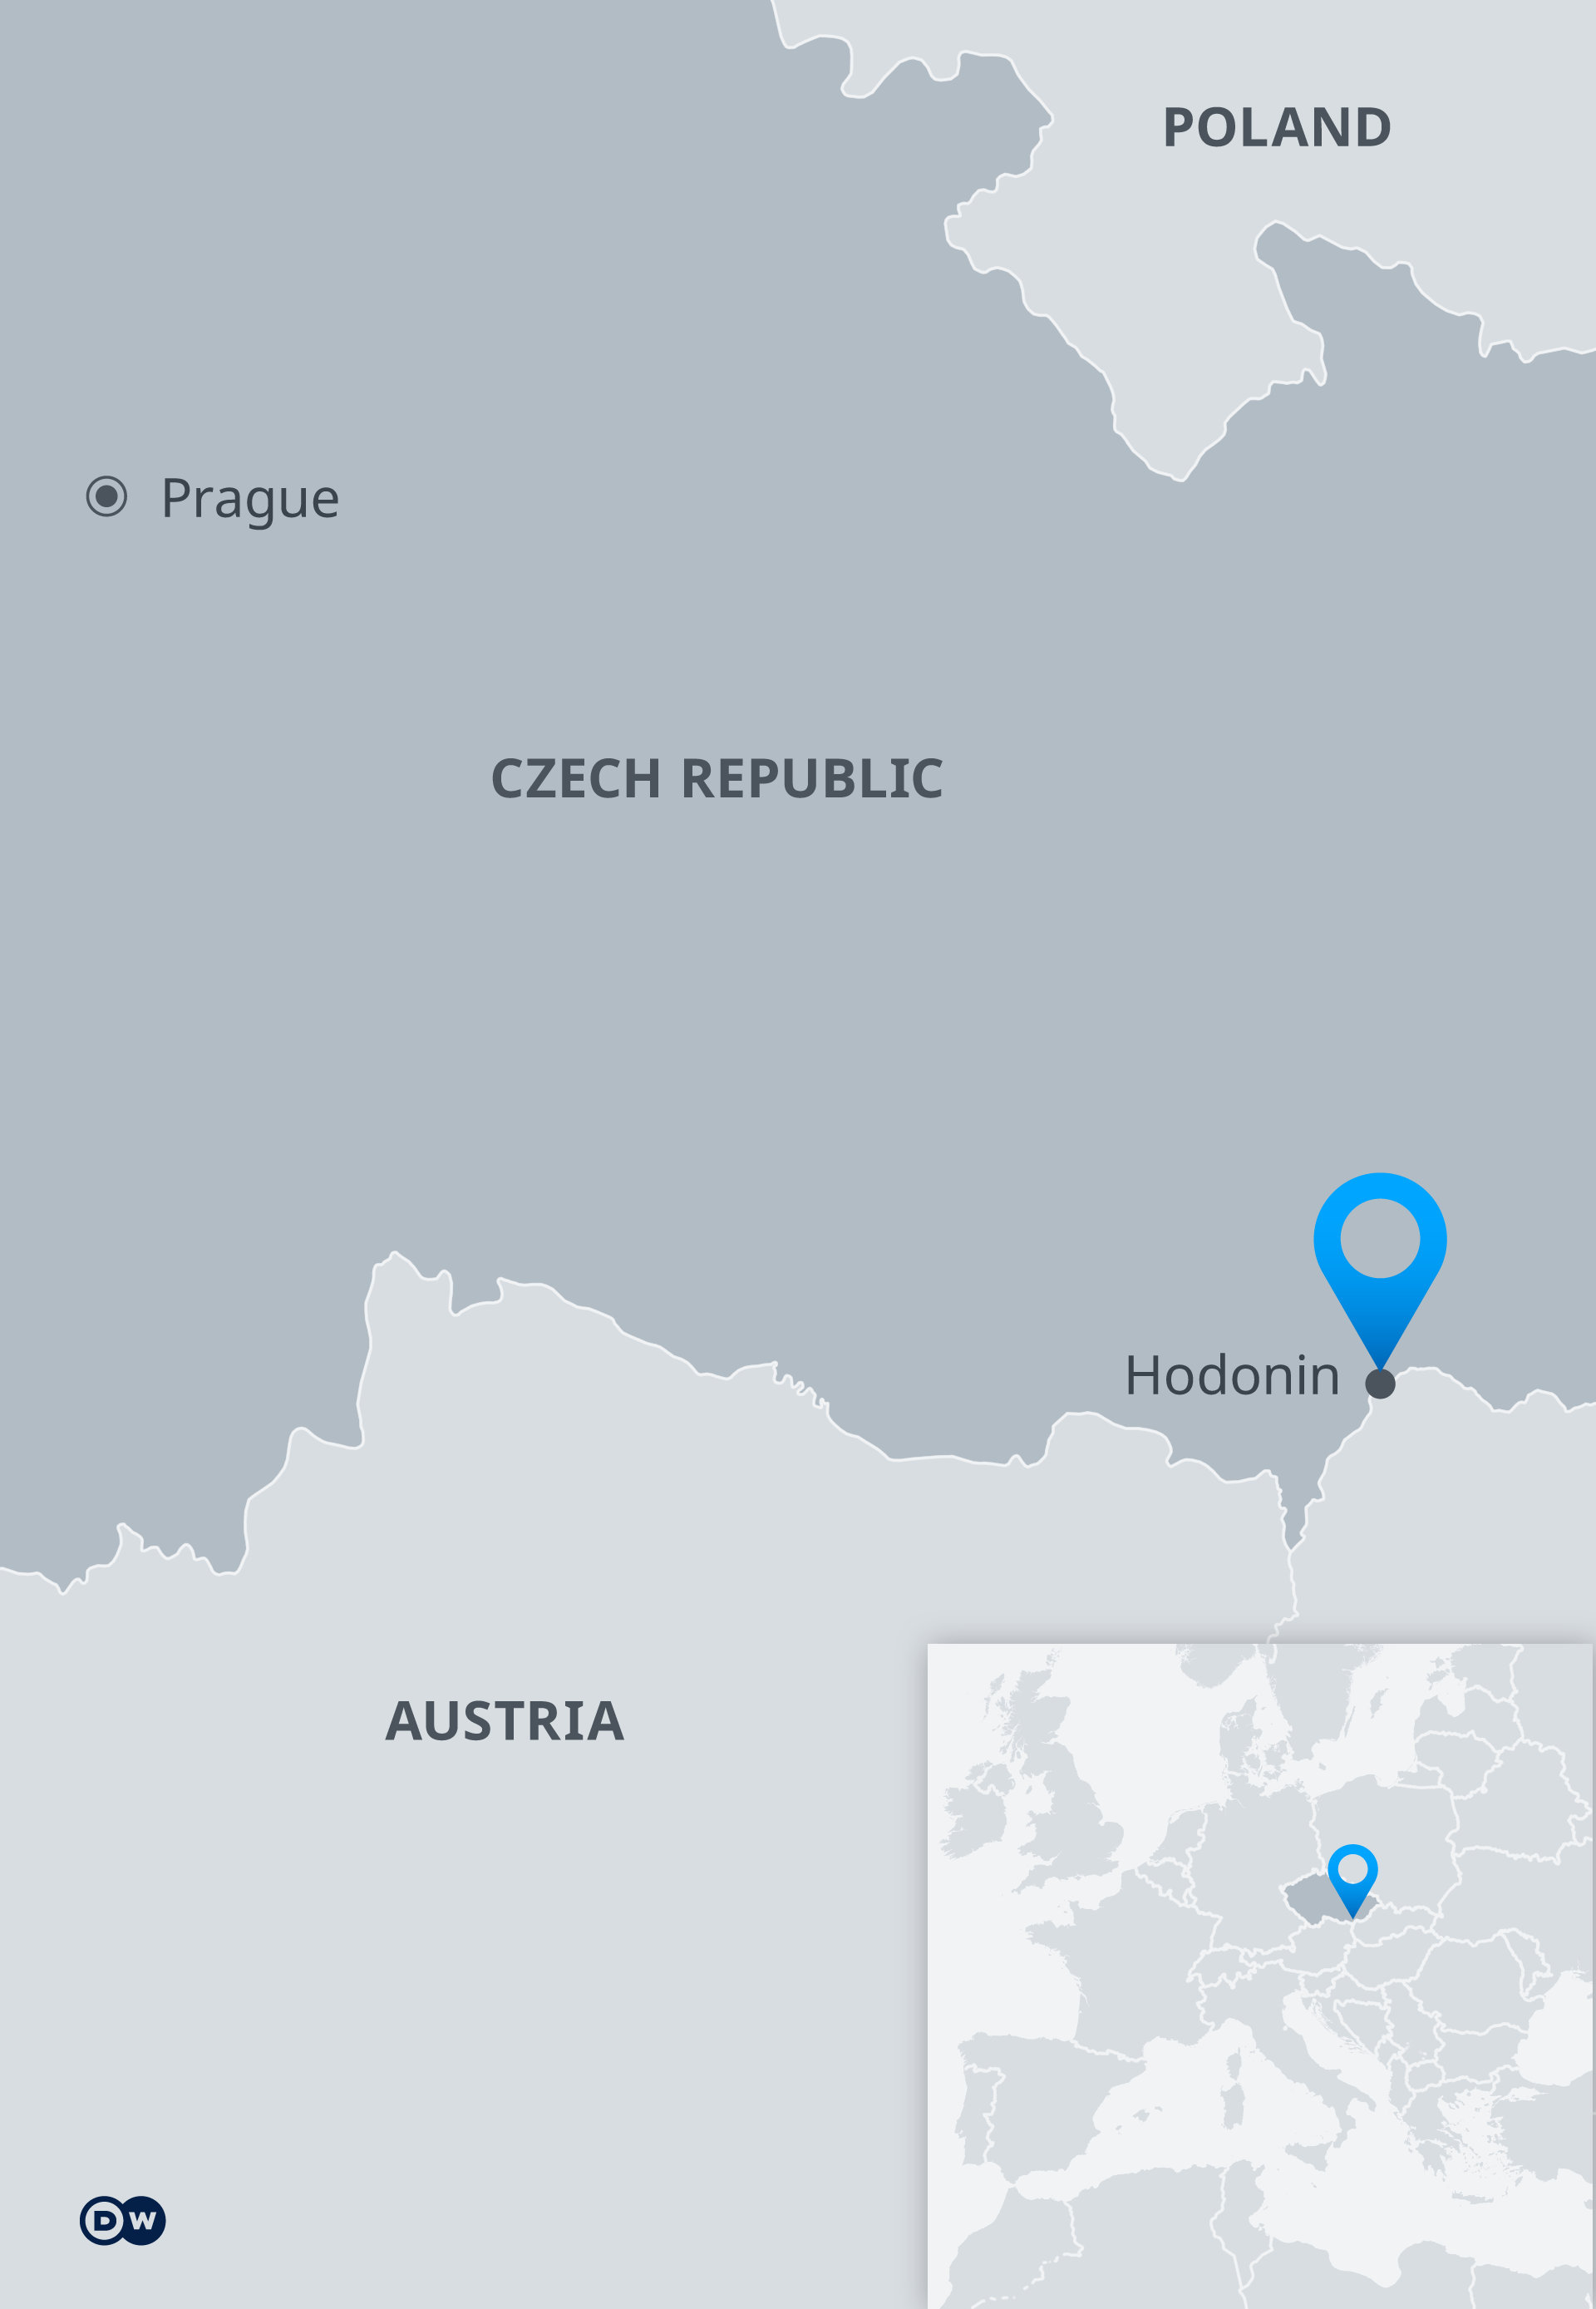 Map indicating location of Hodonin in Czech Republic